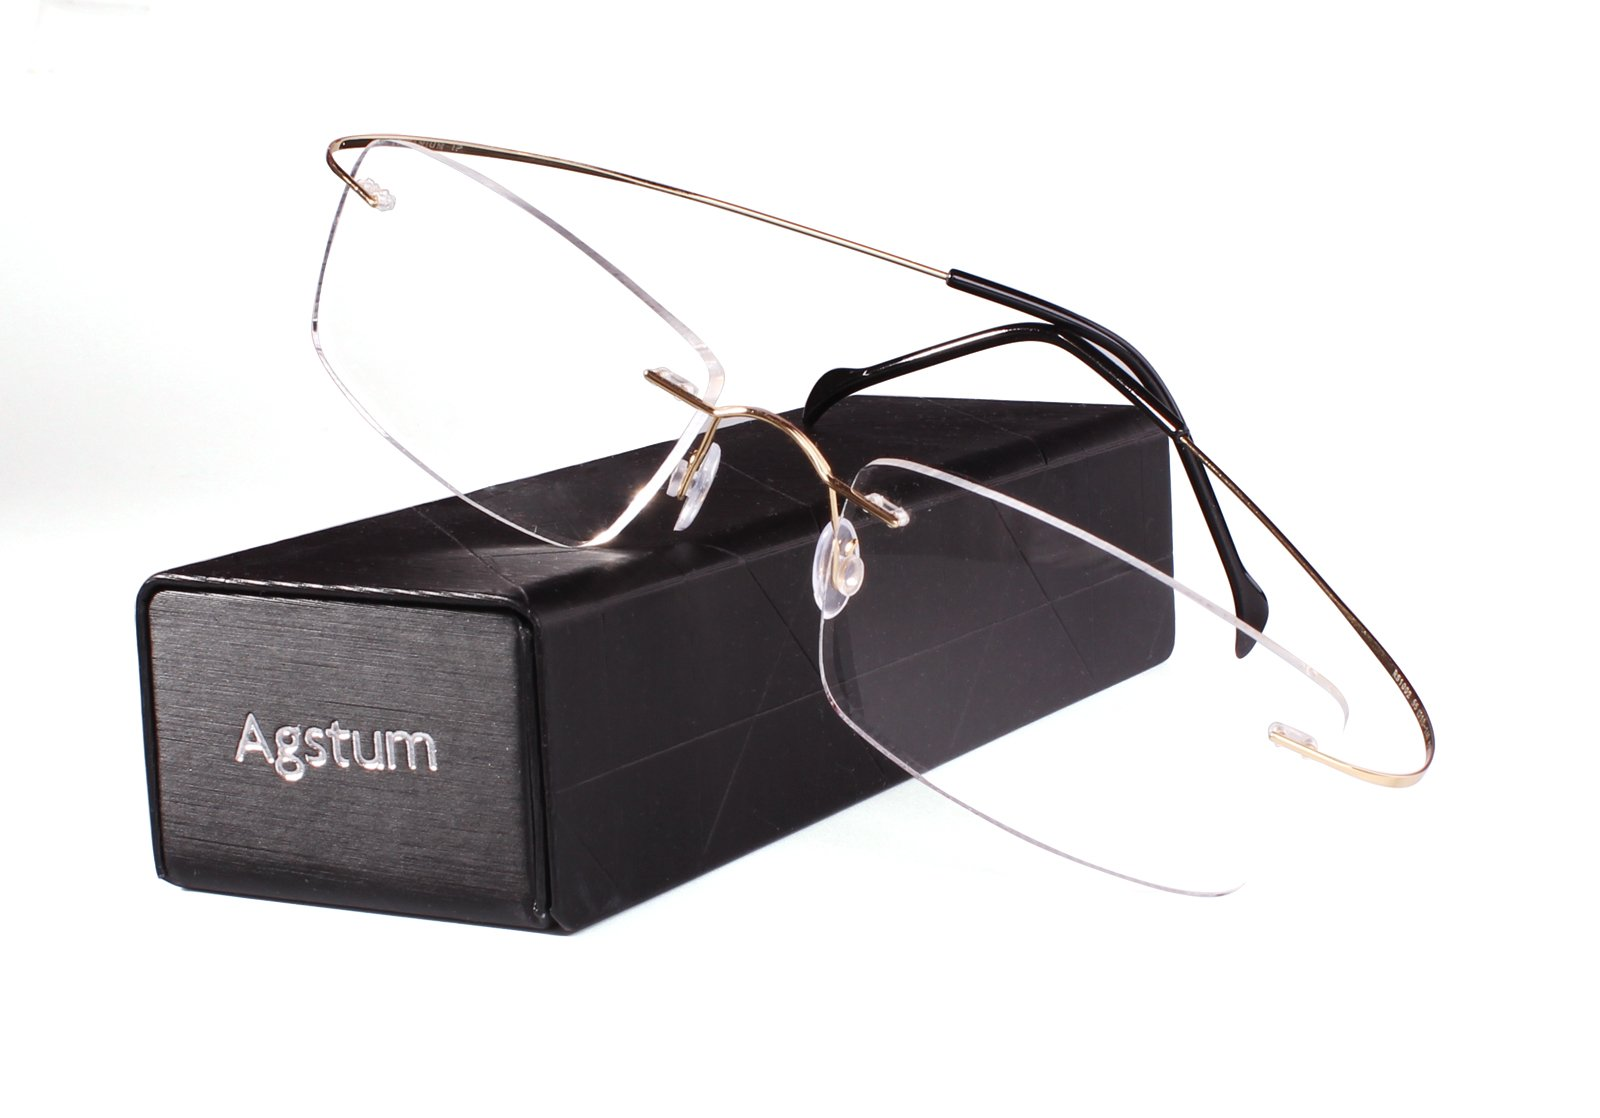 Agstum Pure Titanium Rimless Frame Prescription Hingeless Eyeglasses Rx (Gold, Non-Prescription Clear Lens / 55) by Agstum